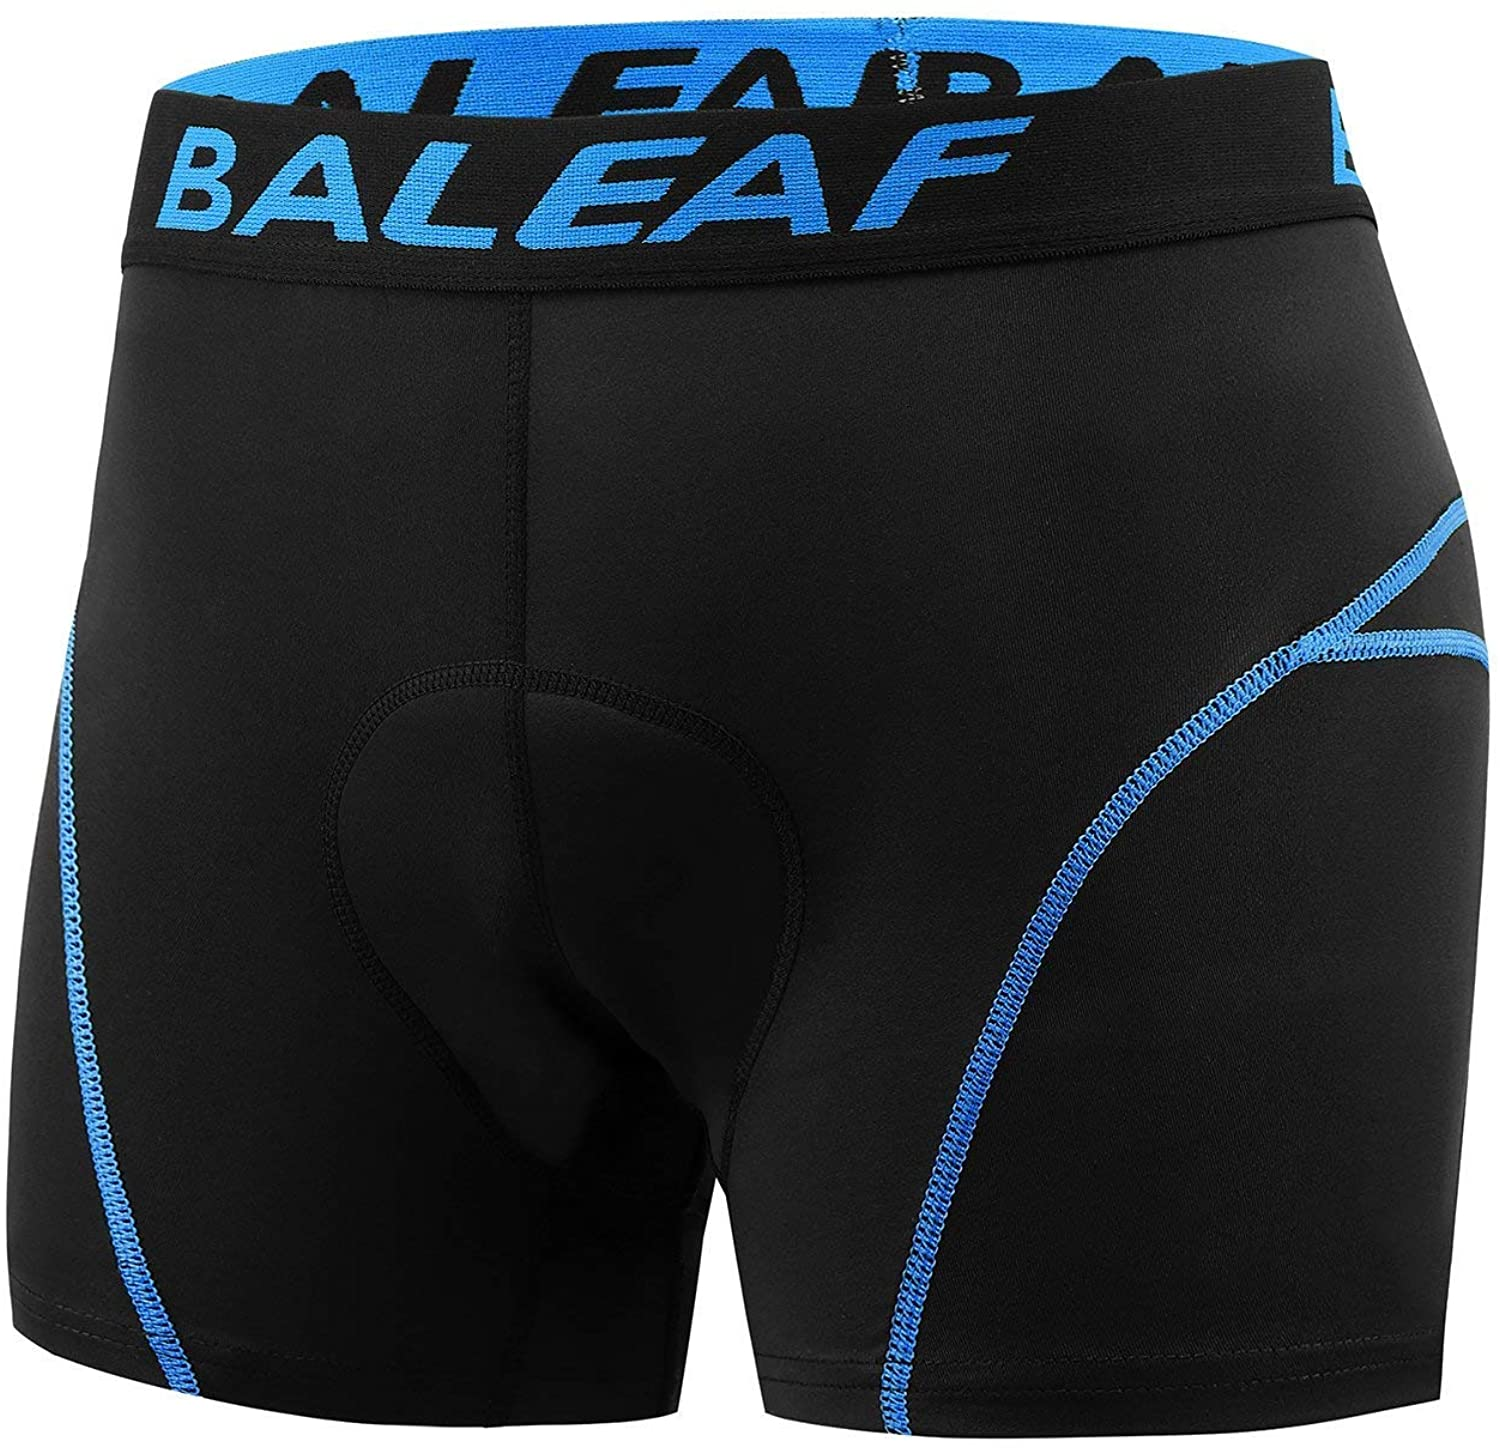 gifts-for-cyclists-underwear